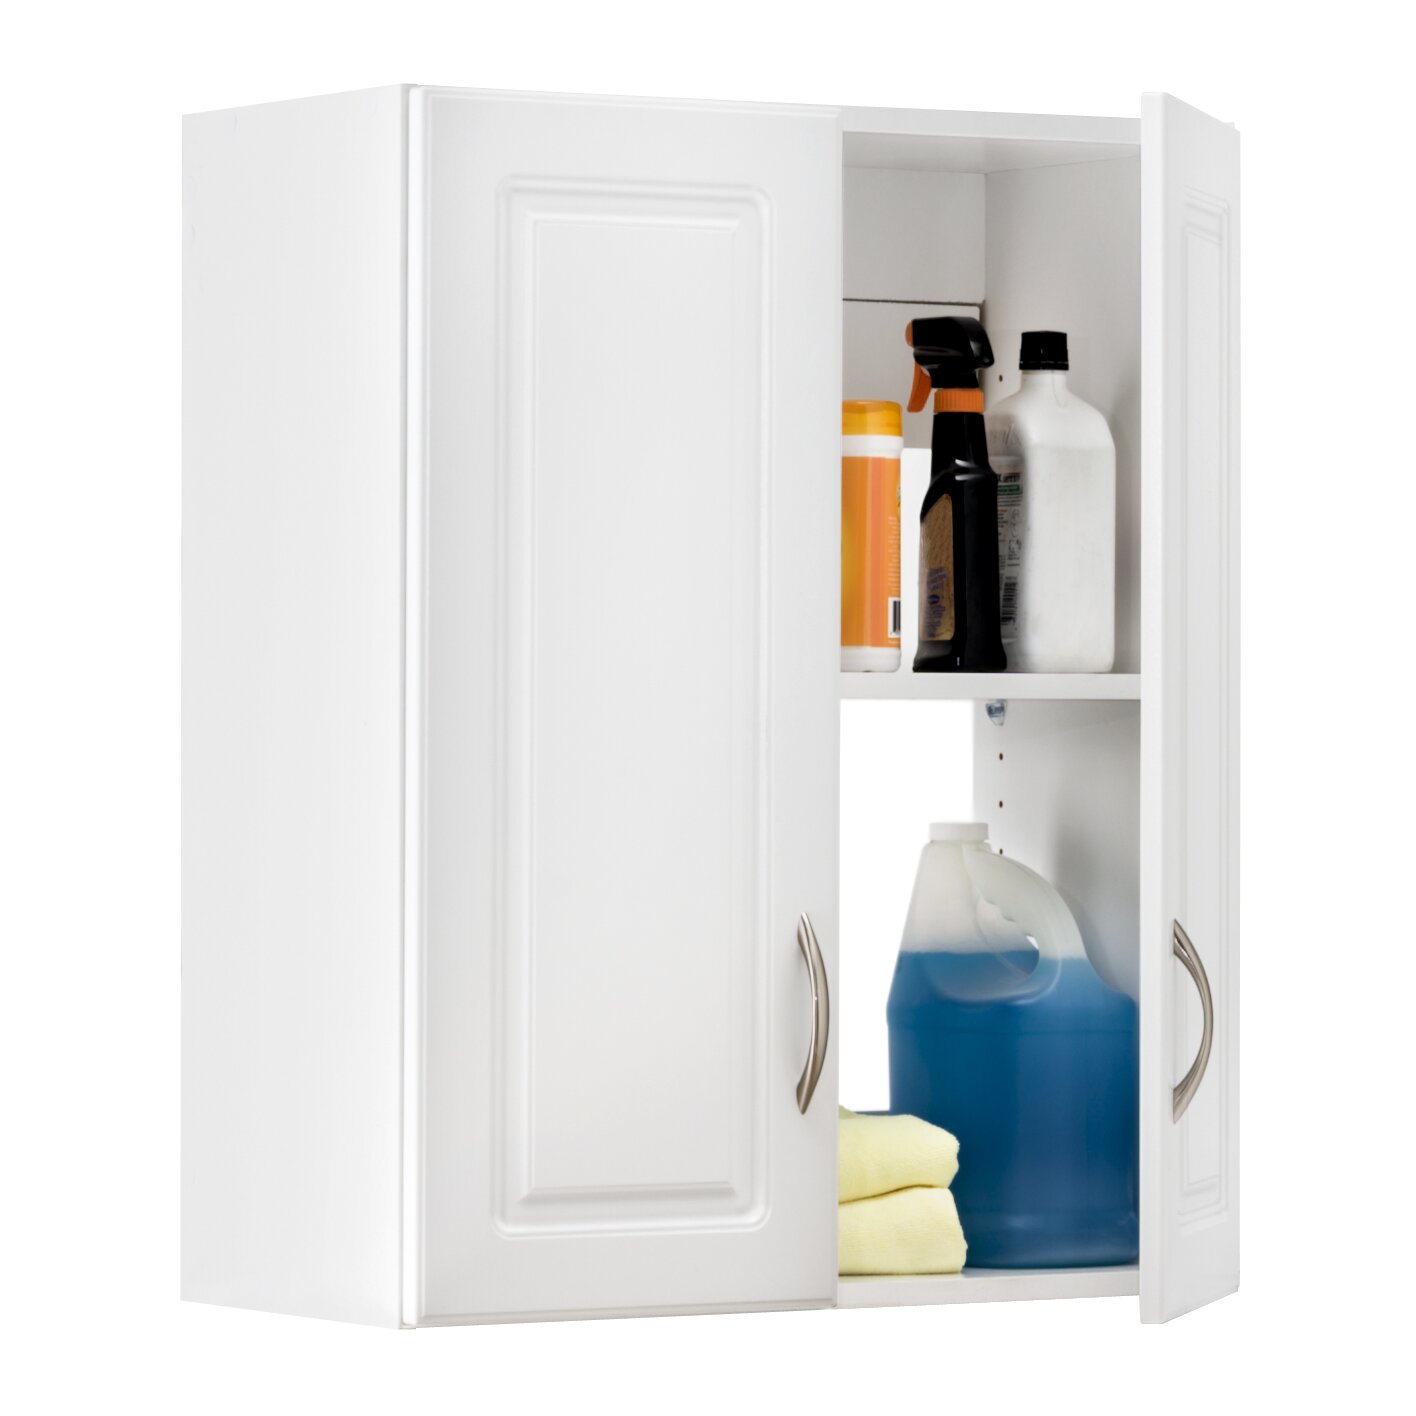 Bathroom storage wall cabinets - Closetmaid Dimensions 29 84 Rdquo H X 24 02 Rdquo W X 11 73 Rdquo D Wall Cabinet